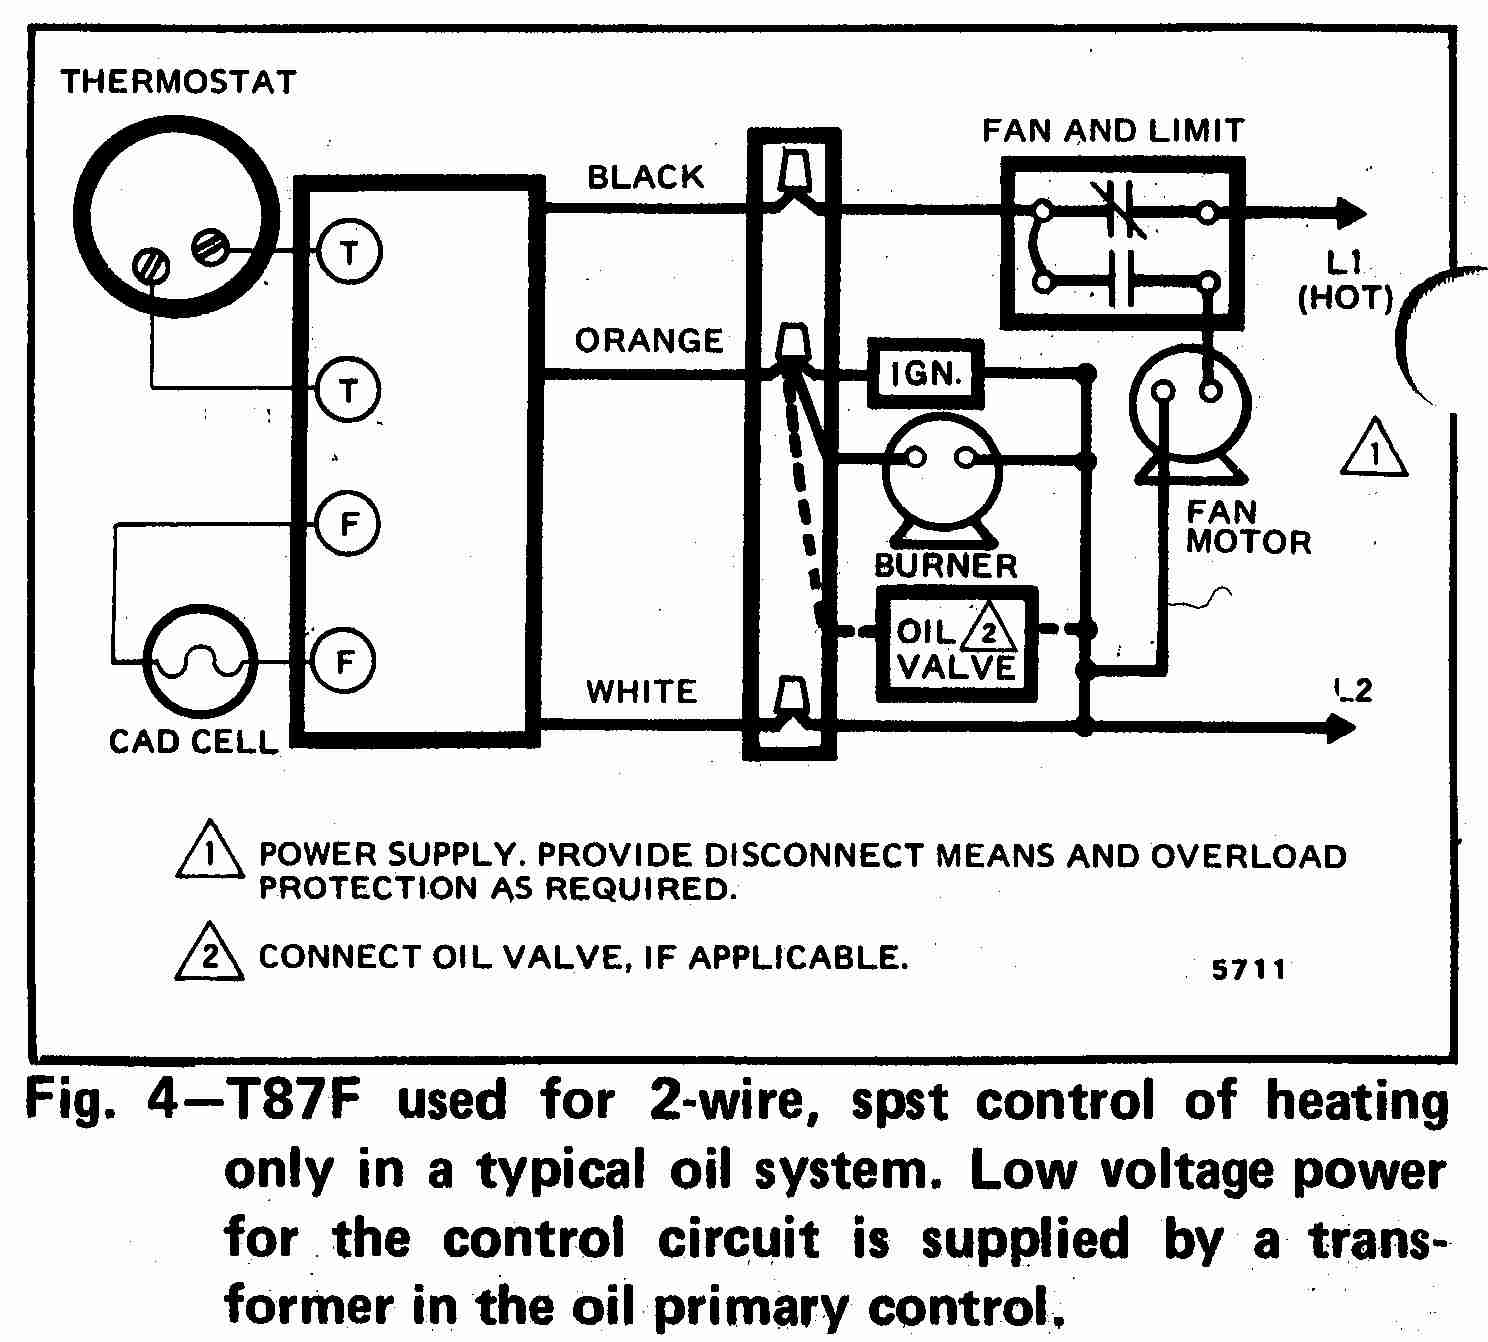 TT_T87F_0002_2W_DJF room thermostat wiring diagrams for hvac systems lennox thermostat wiring diagram at bayanpartner.co